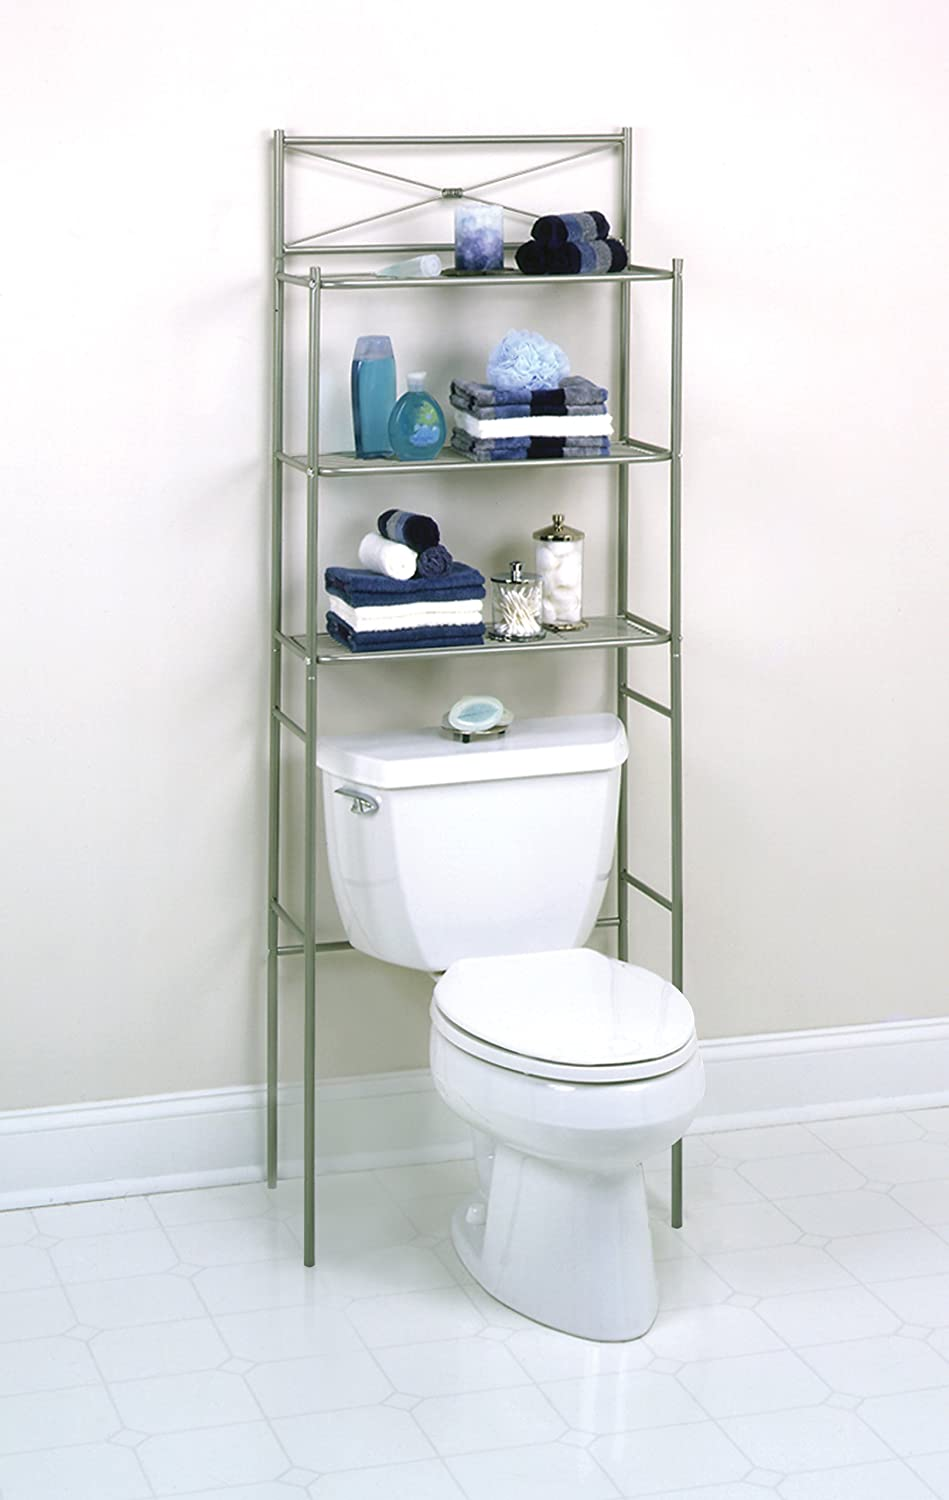 Bathroom Over The Toilet Shelf Of Zenith Bathstyles Spacesaver Bathroom Storage Over The